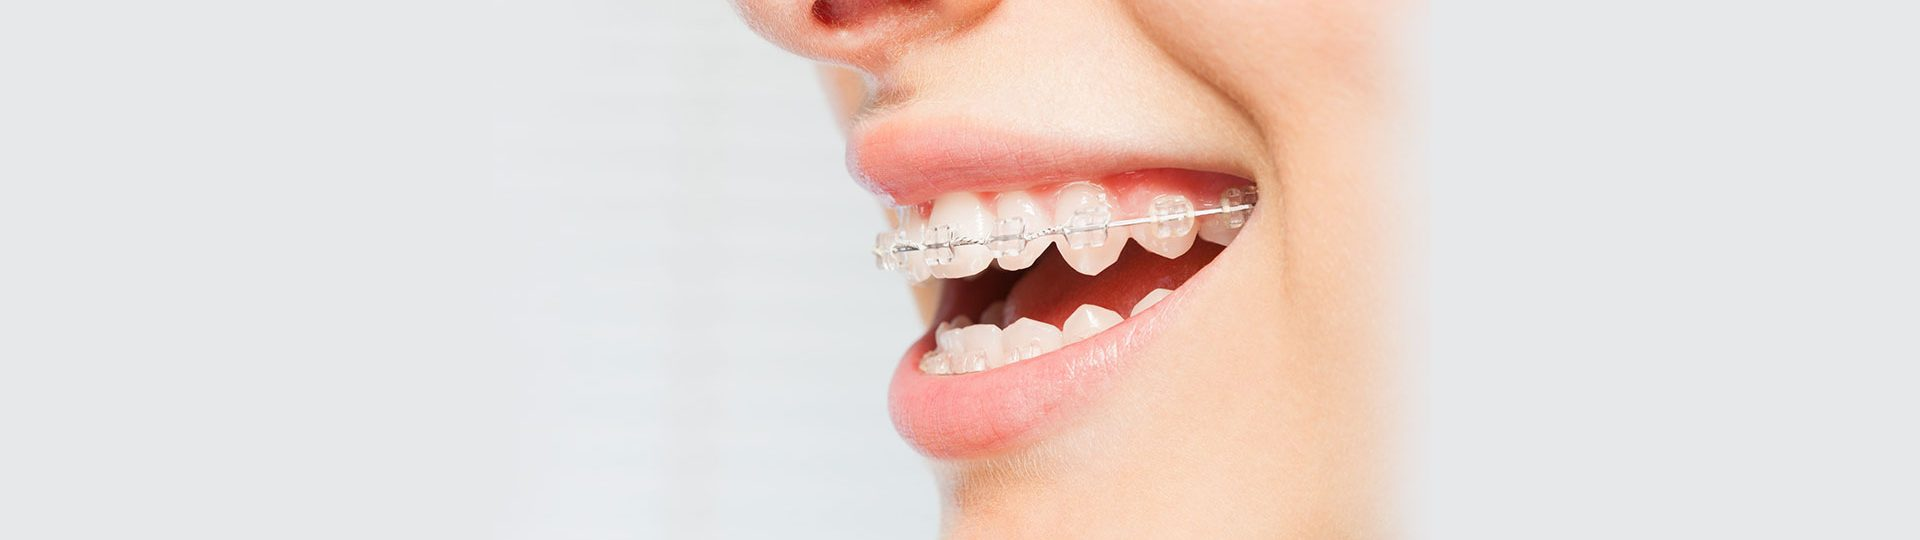 Metal Braces vs. Invisalign: Which is Best?